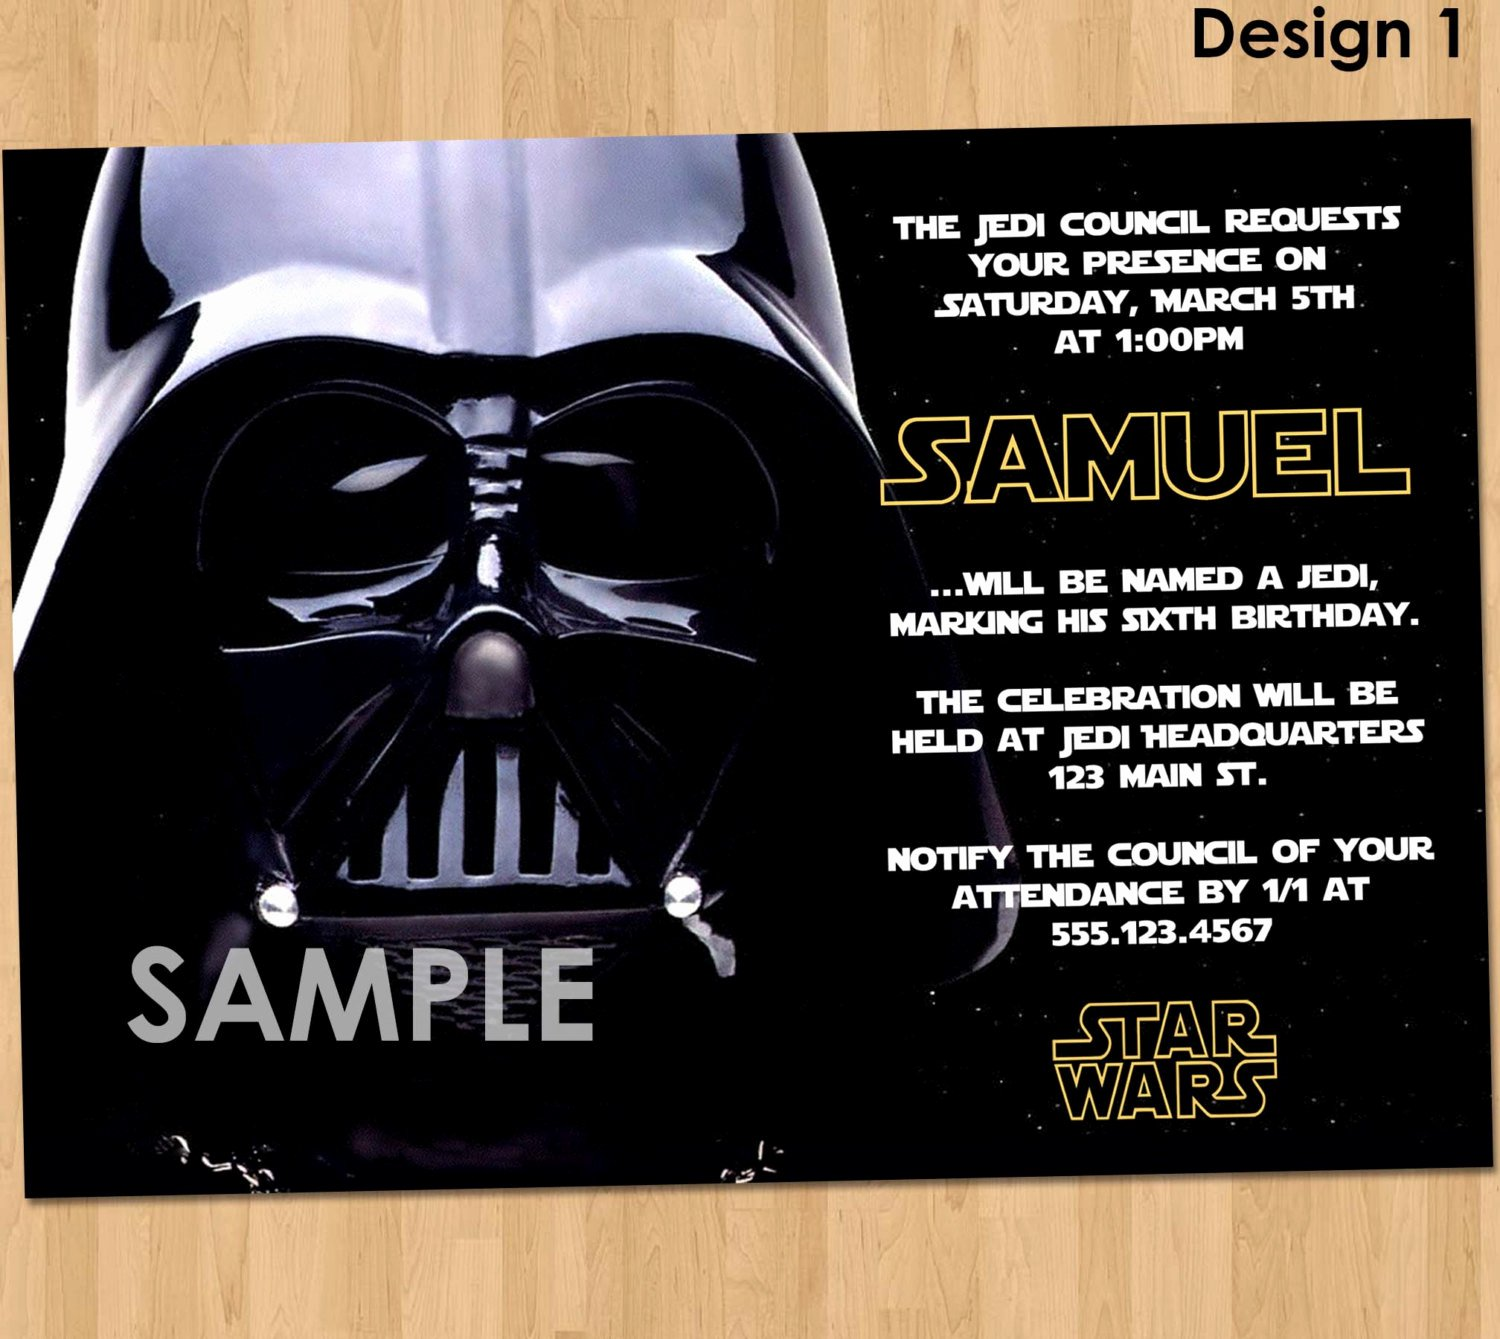 Star Wars Personalized Birthday Invitations New Free Star Wars Birthday Invitations – Free Printable Birthday Invitation Templates – Bagvania